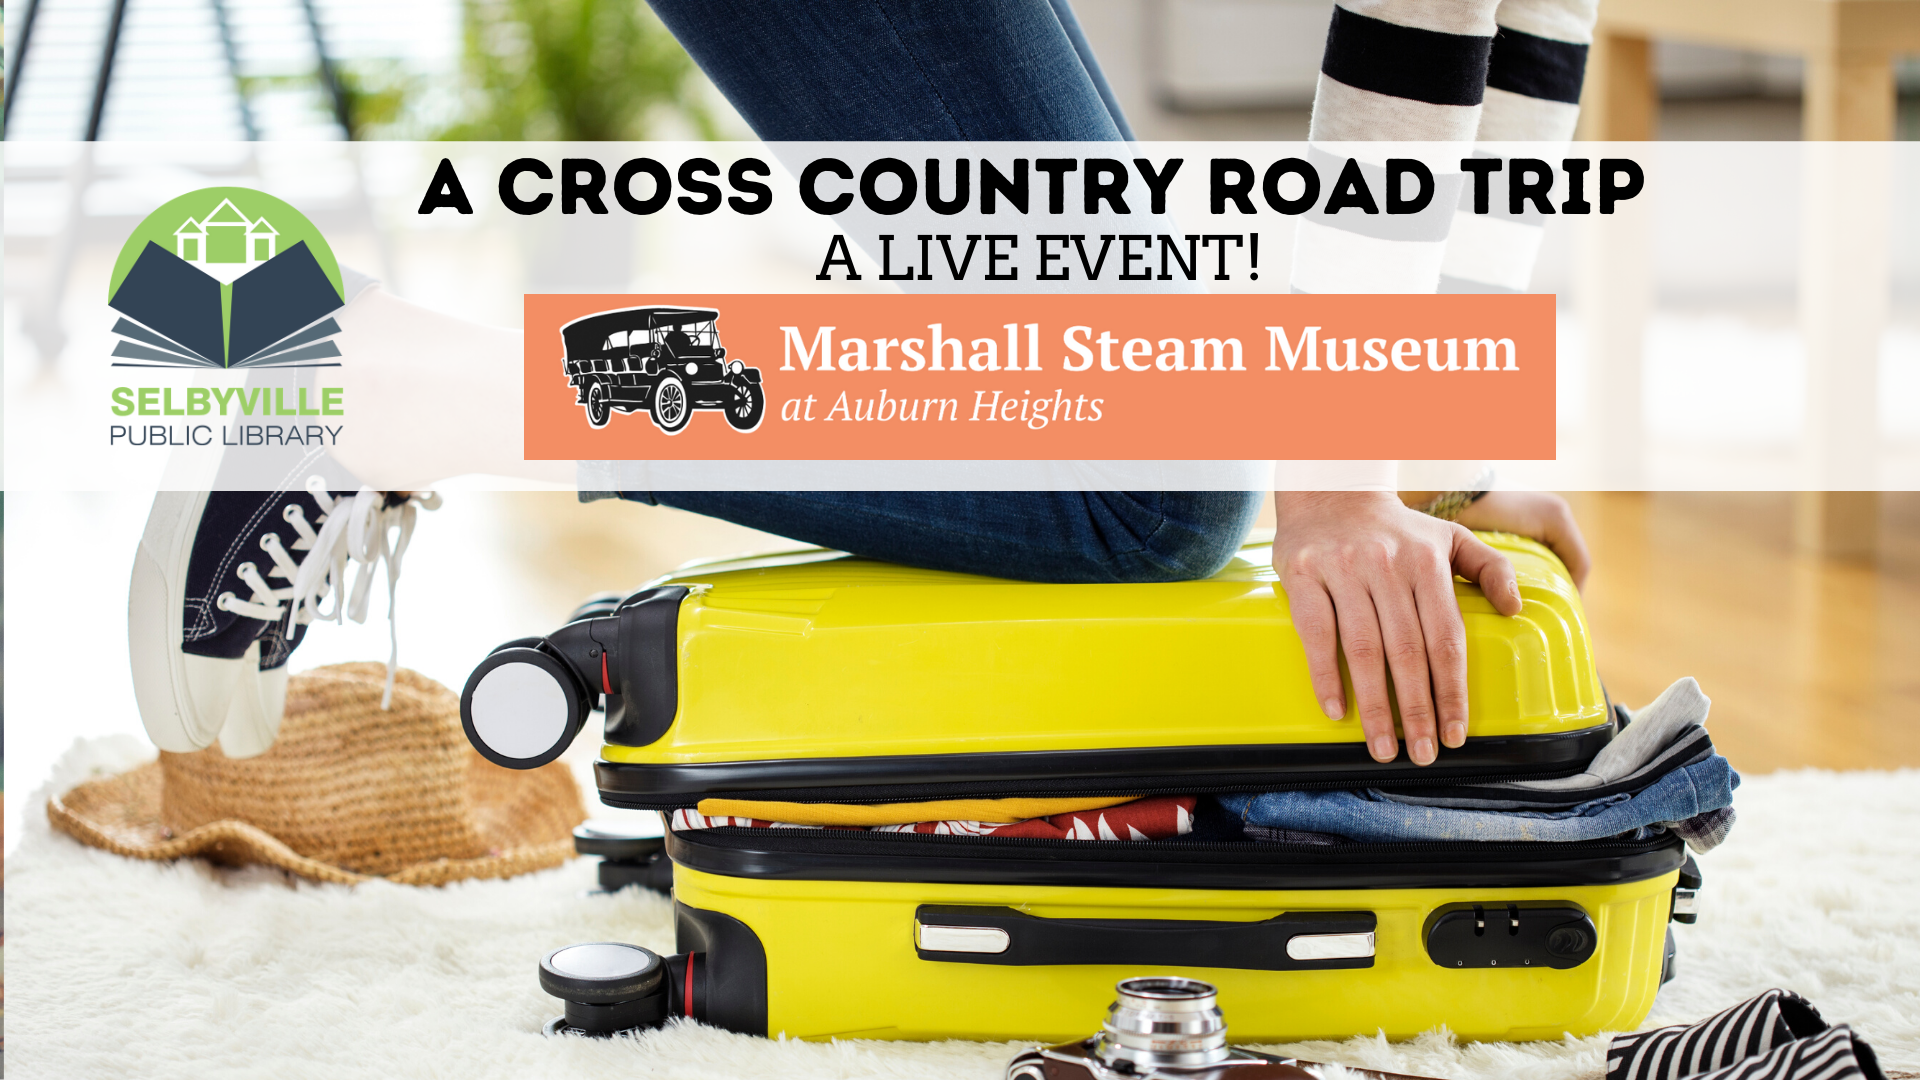 Cross Country Road Trip - LIVE! // Marshall Steam Museum